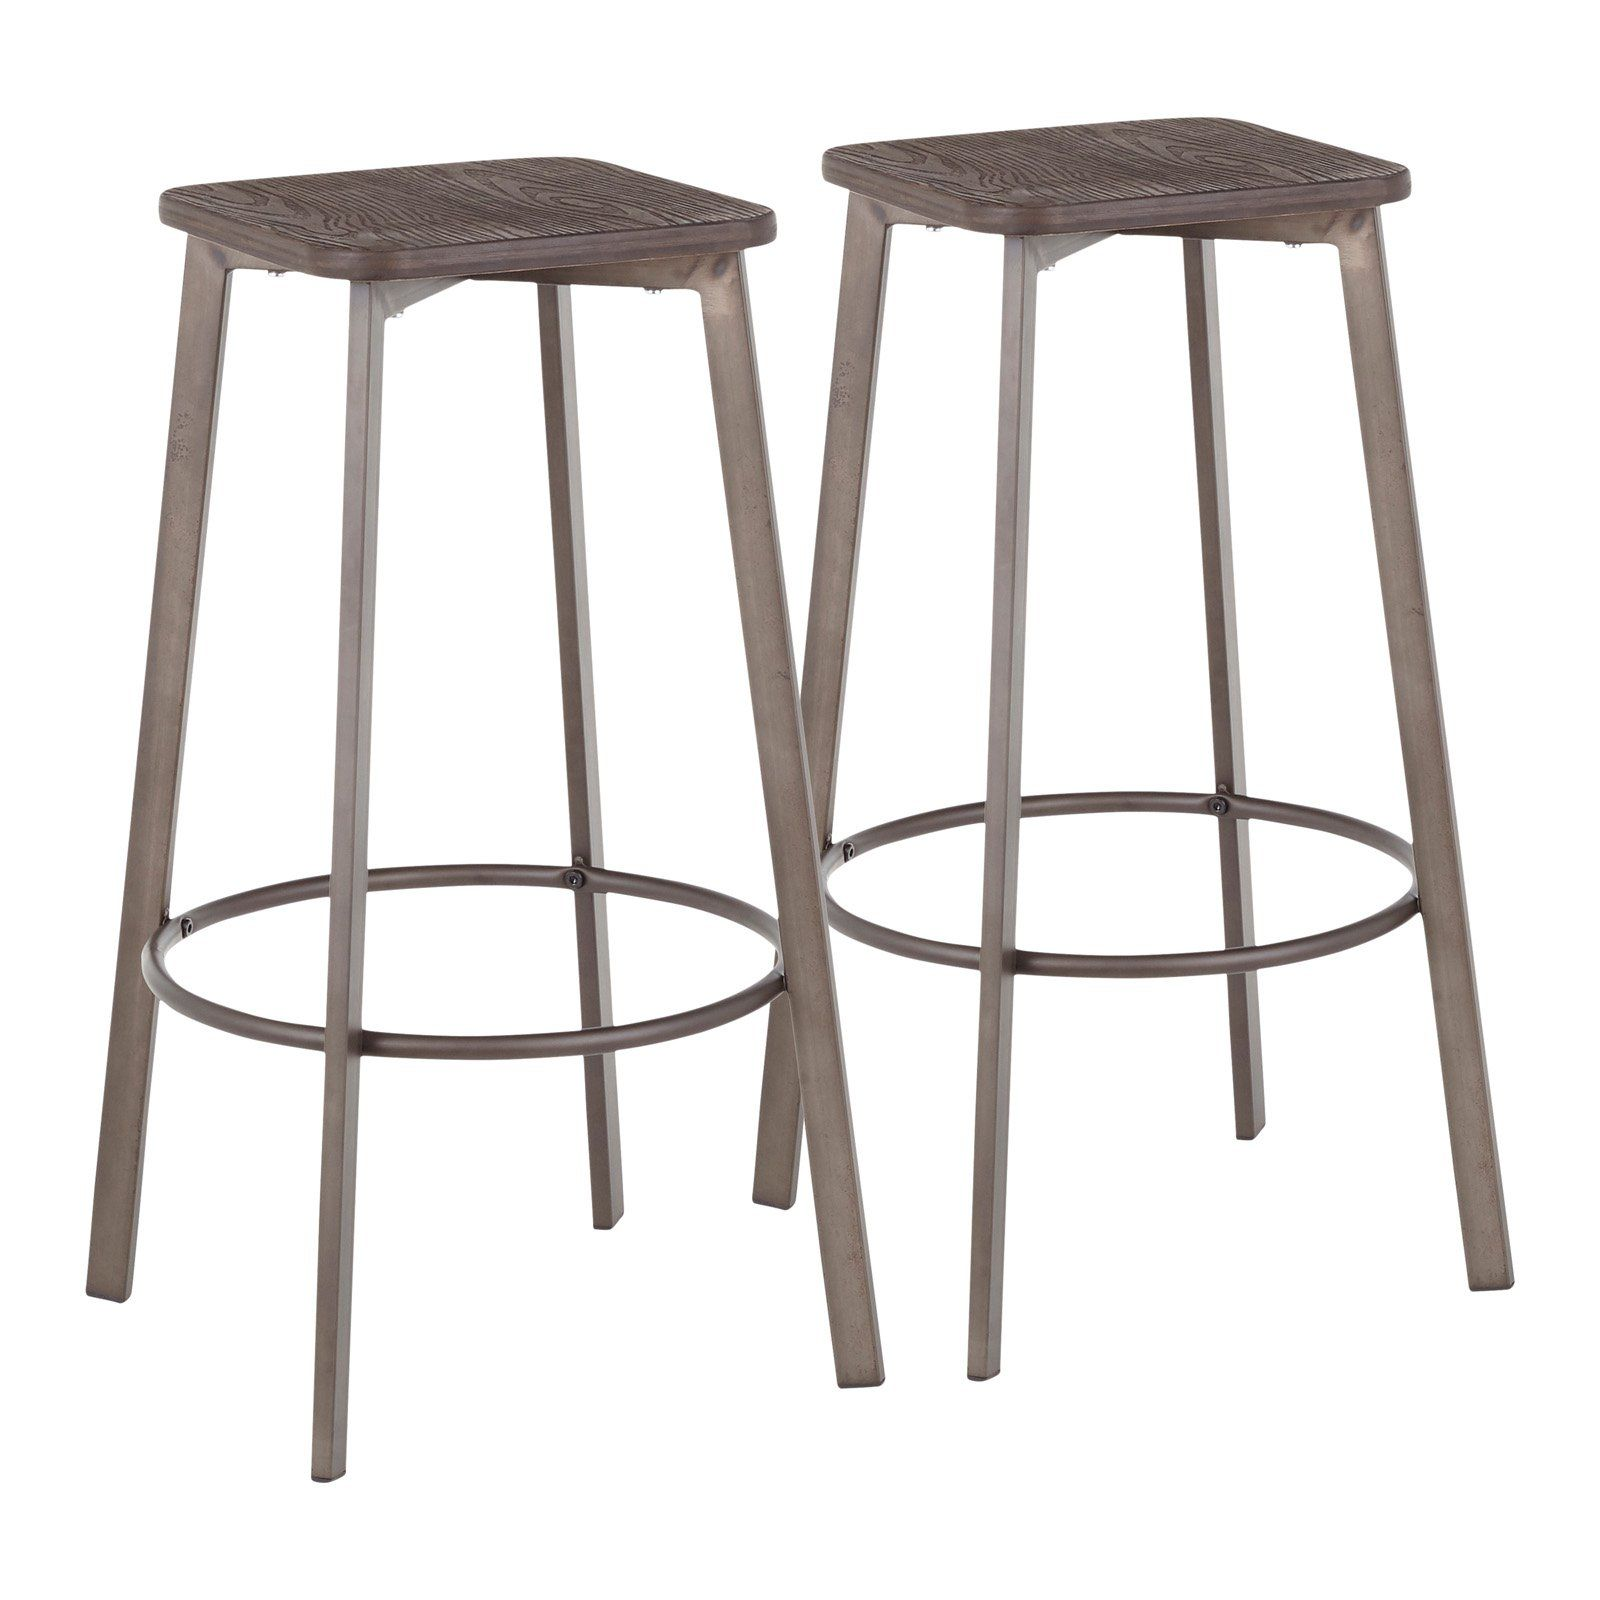 Lumisource Clara 30 In Square Backless Bar Stool Set Of 2